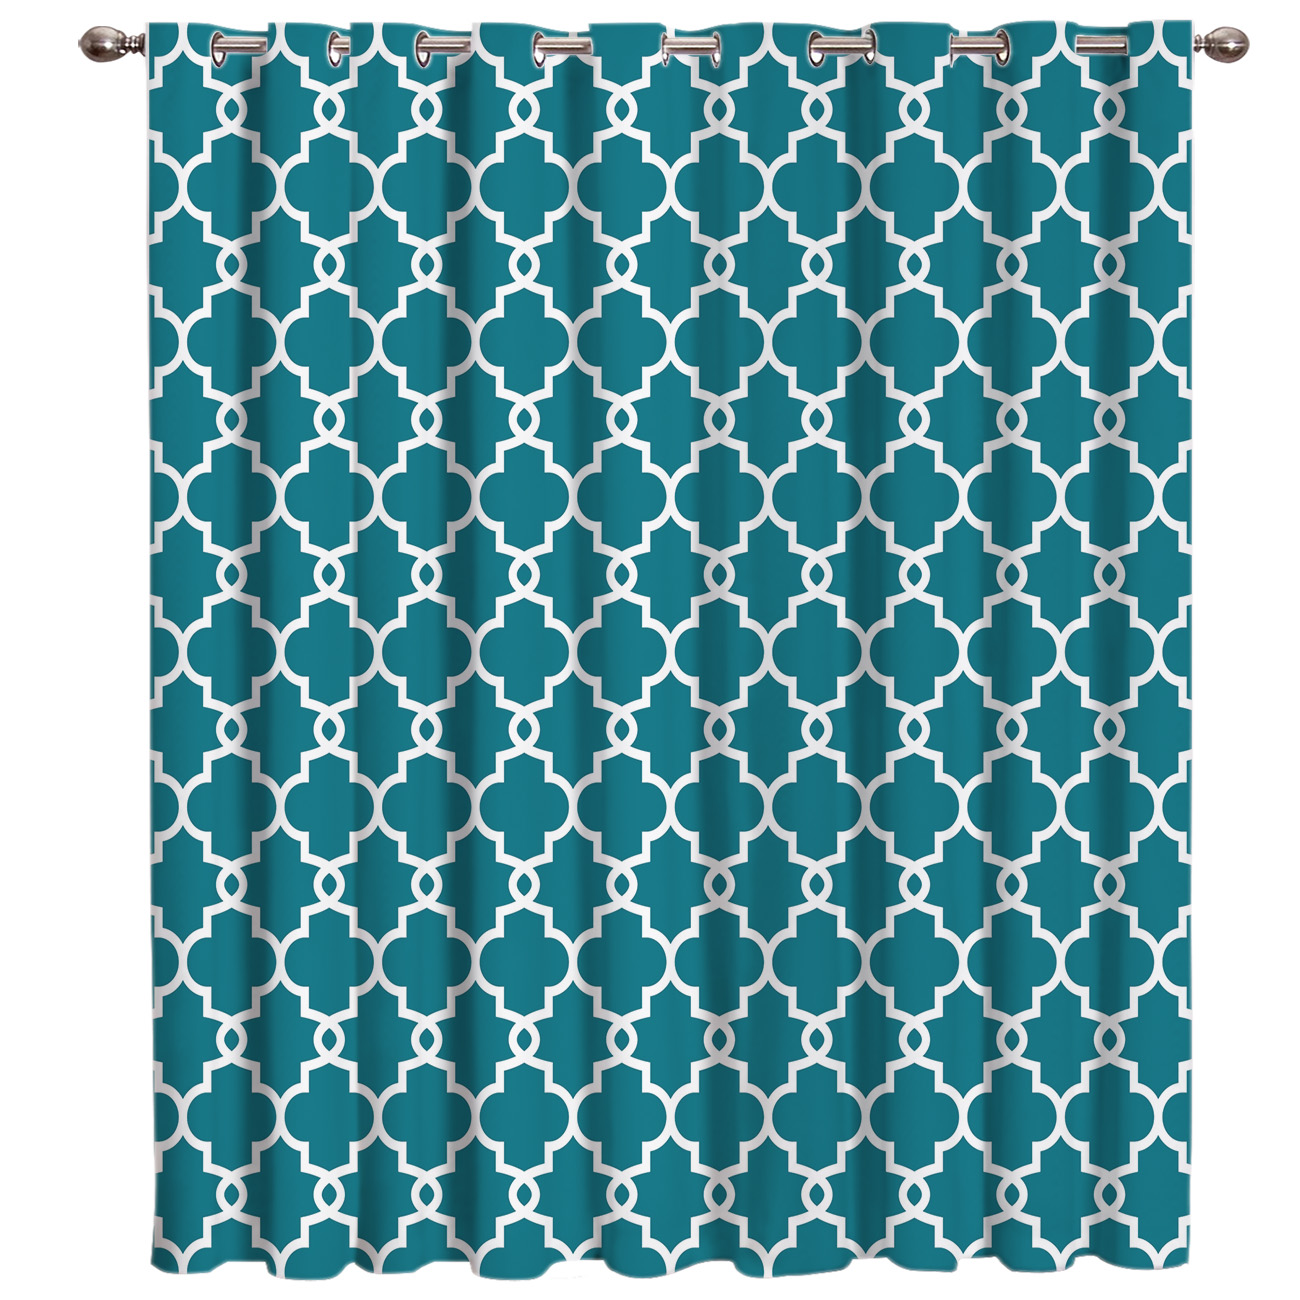 Permalink to Moroccan Blue Pattern Window Treatments Curtains Valance Window Blinds Living Room Bathroom Bedroom Drapes Window Treatment